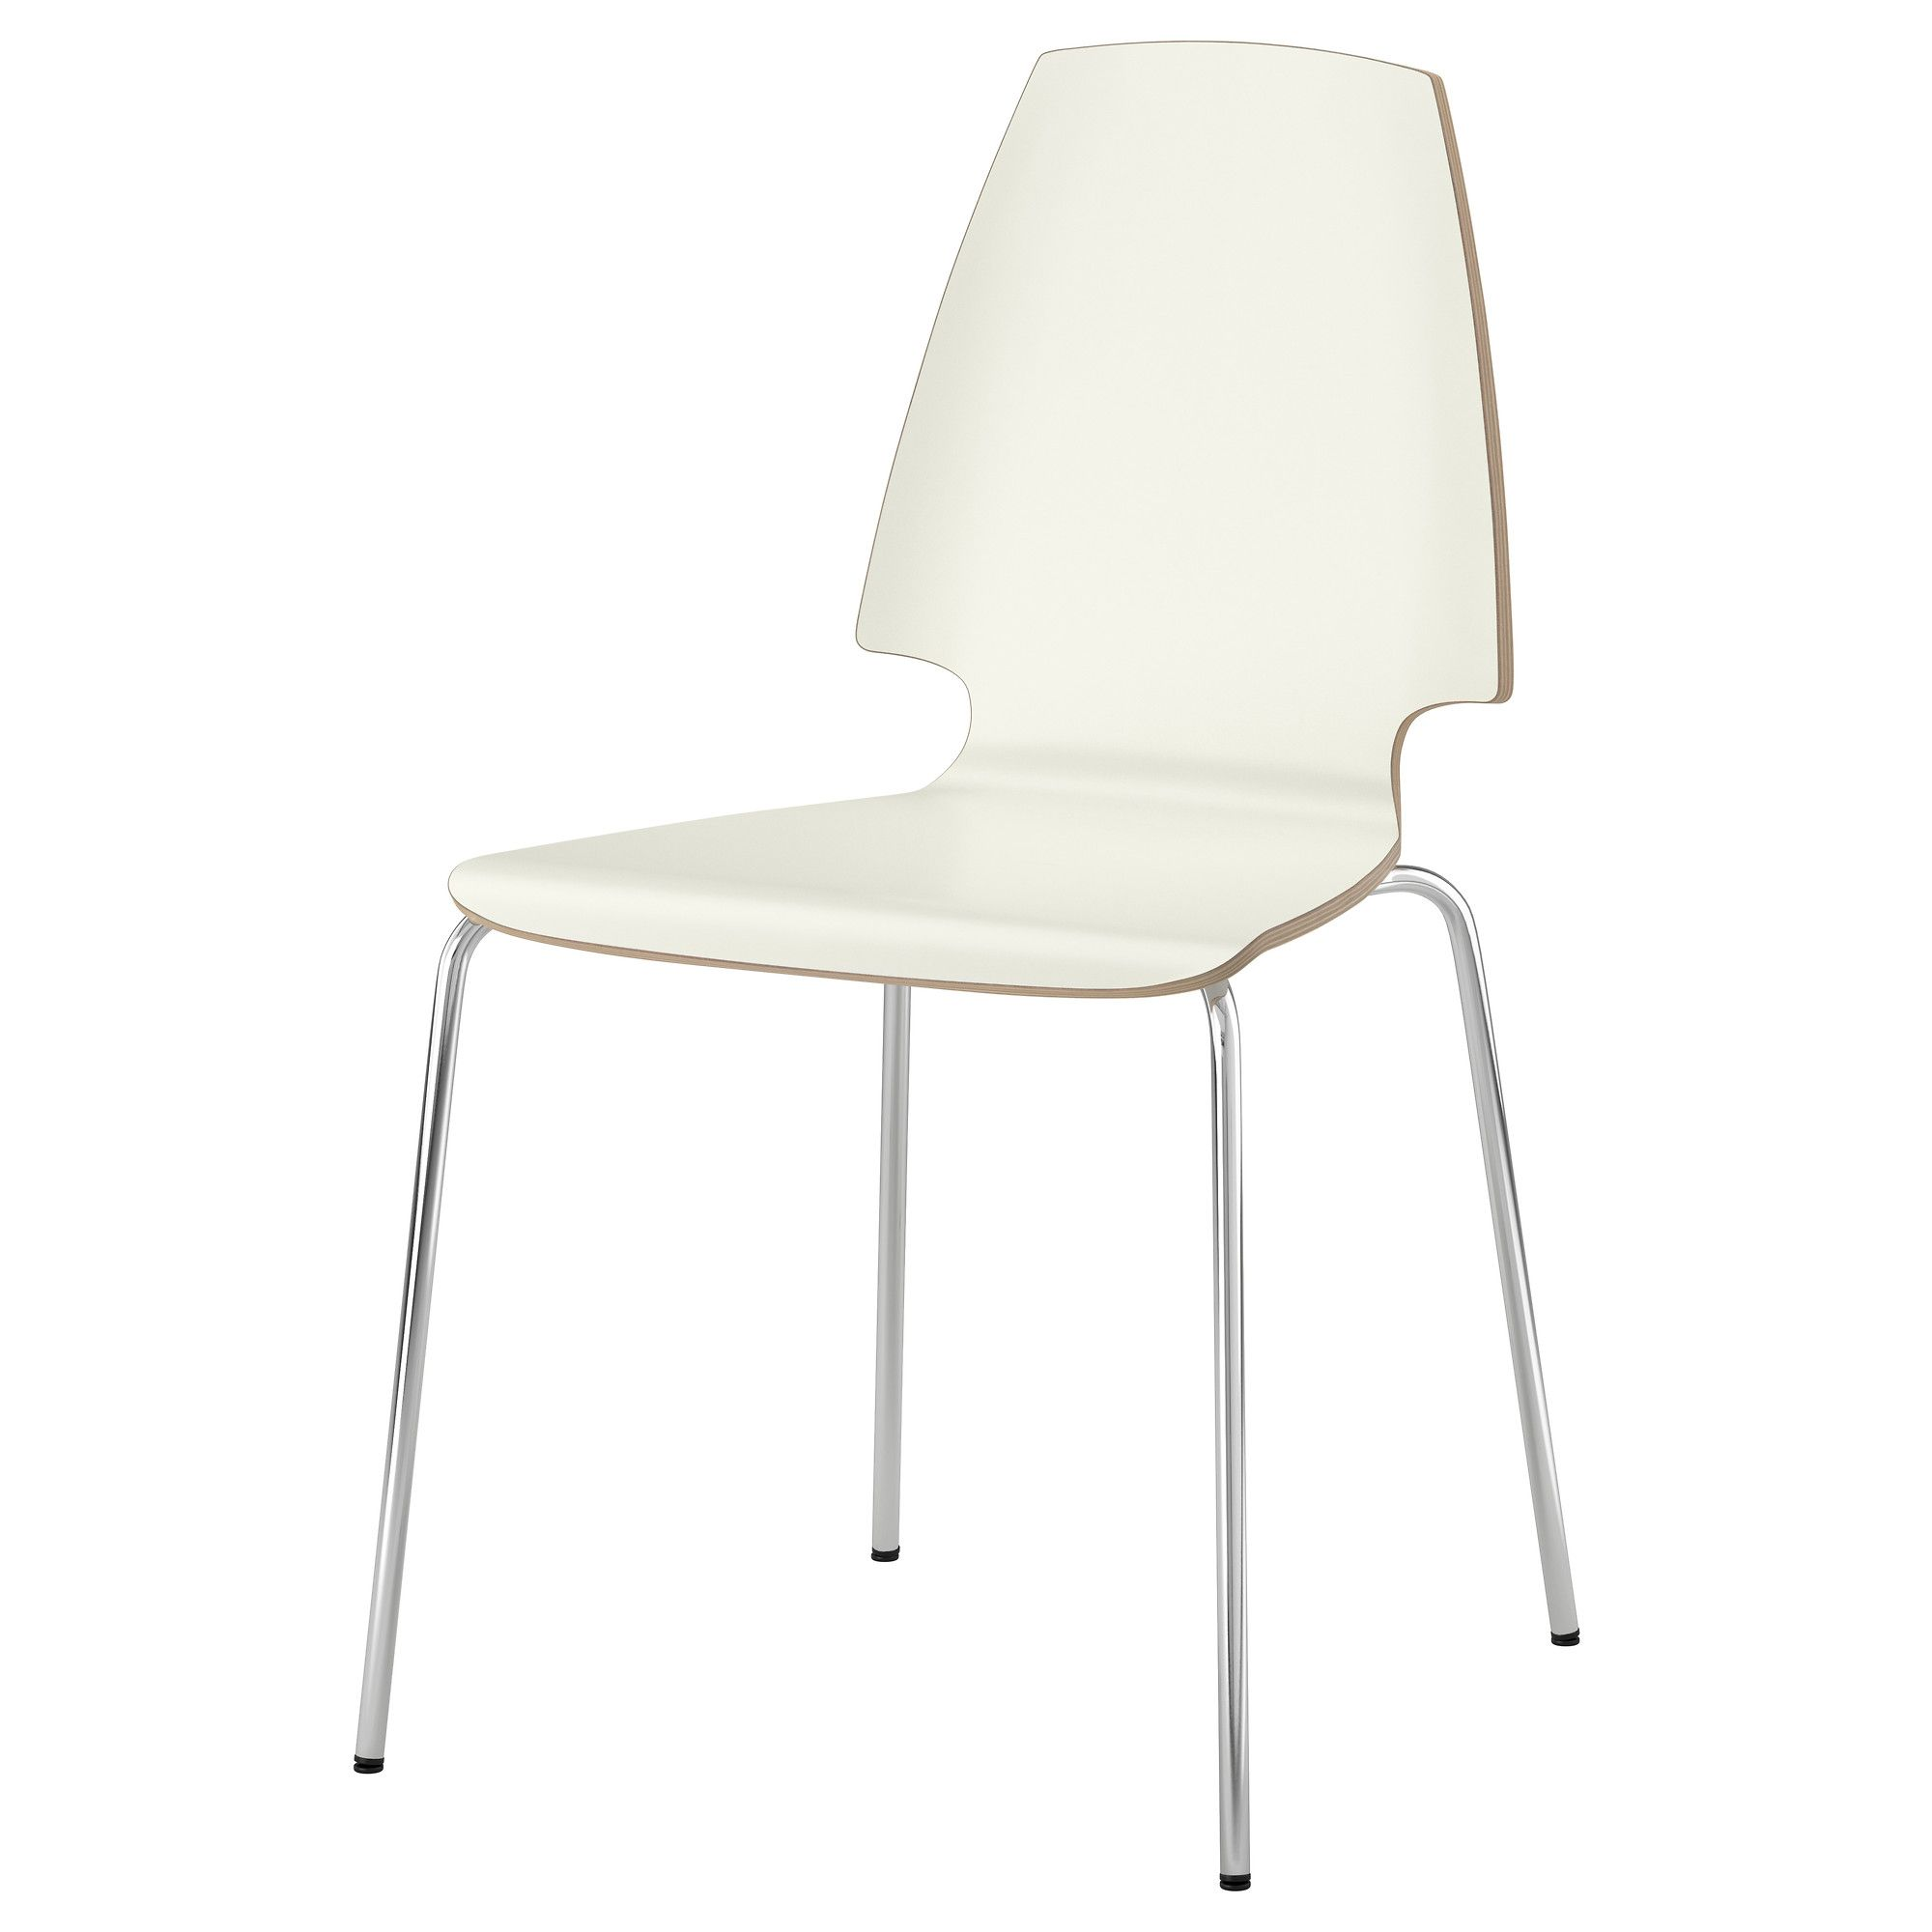 Ikea Vilmar Chair The Apos S Melamine Surface Makes It Durable And